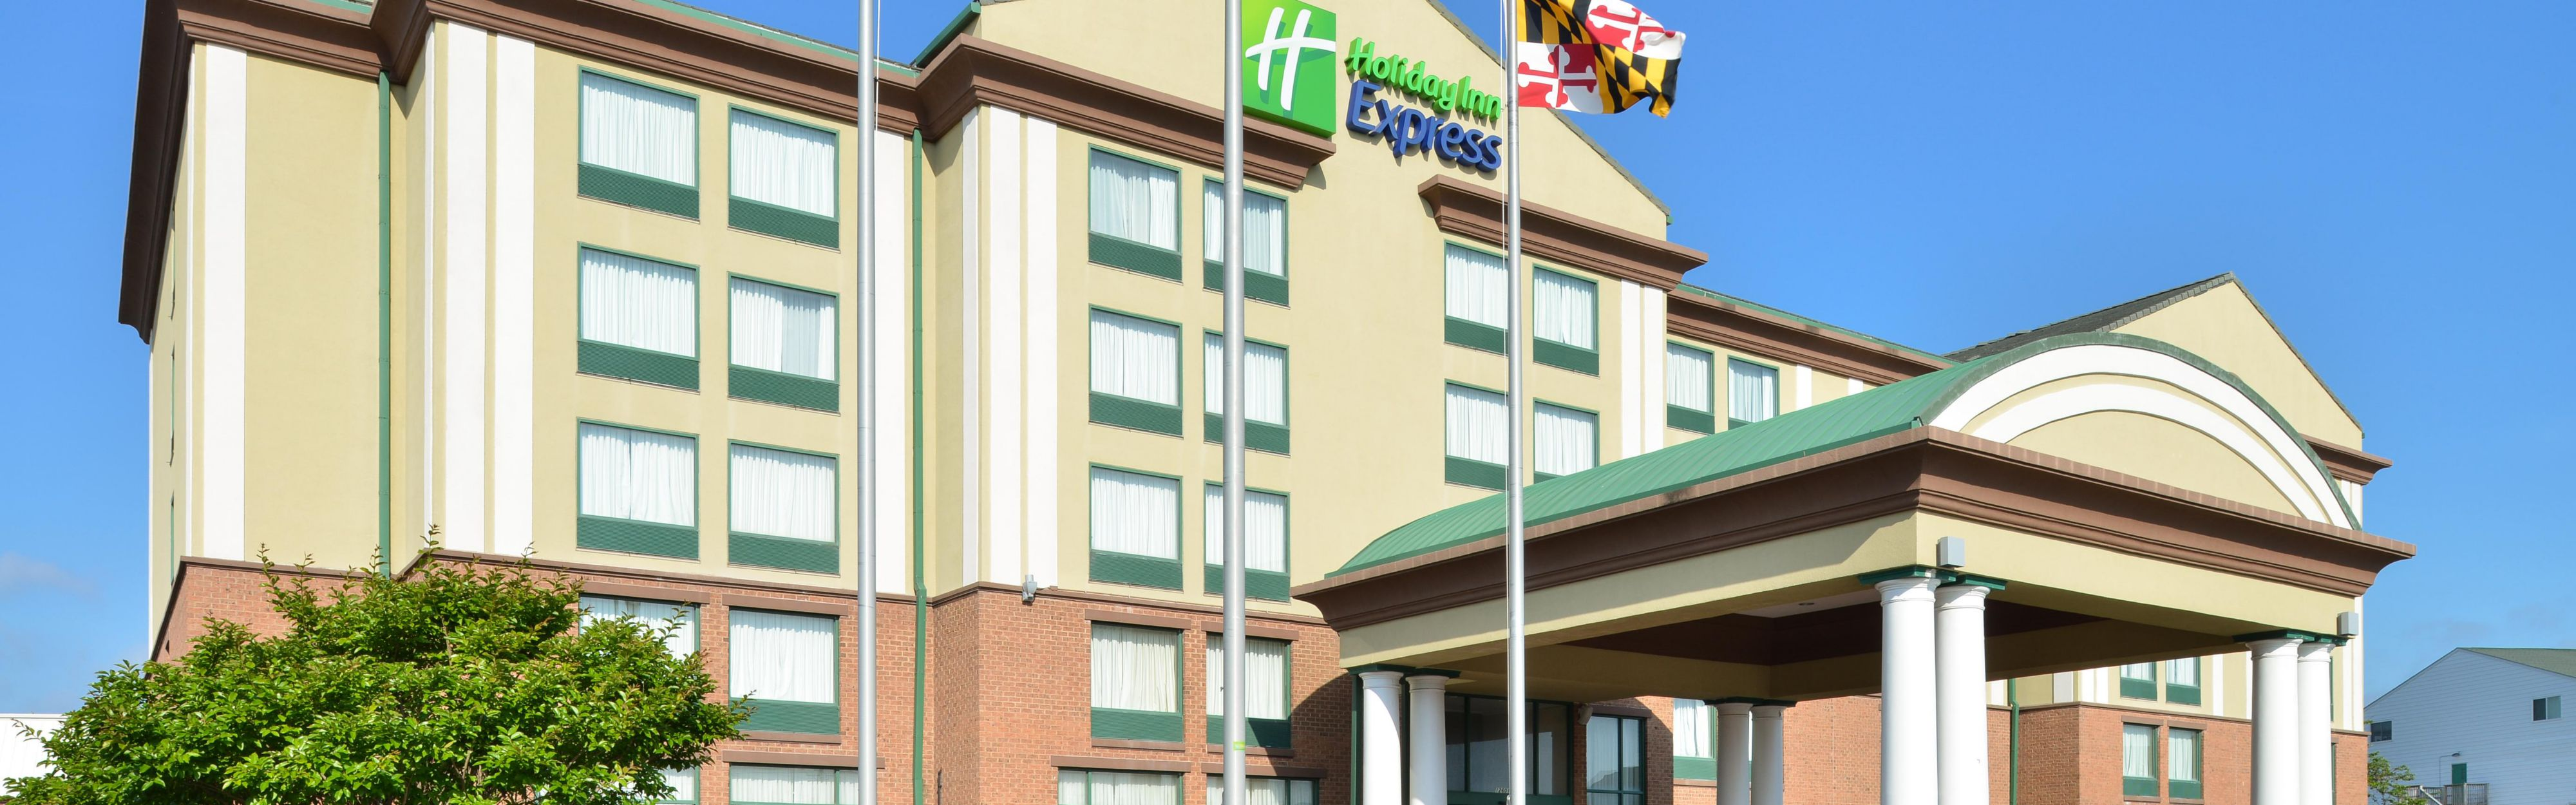 Holiday Inn Express & Suites Ocean City image 0